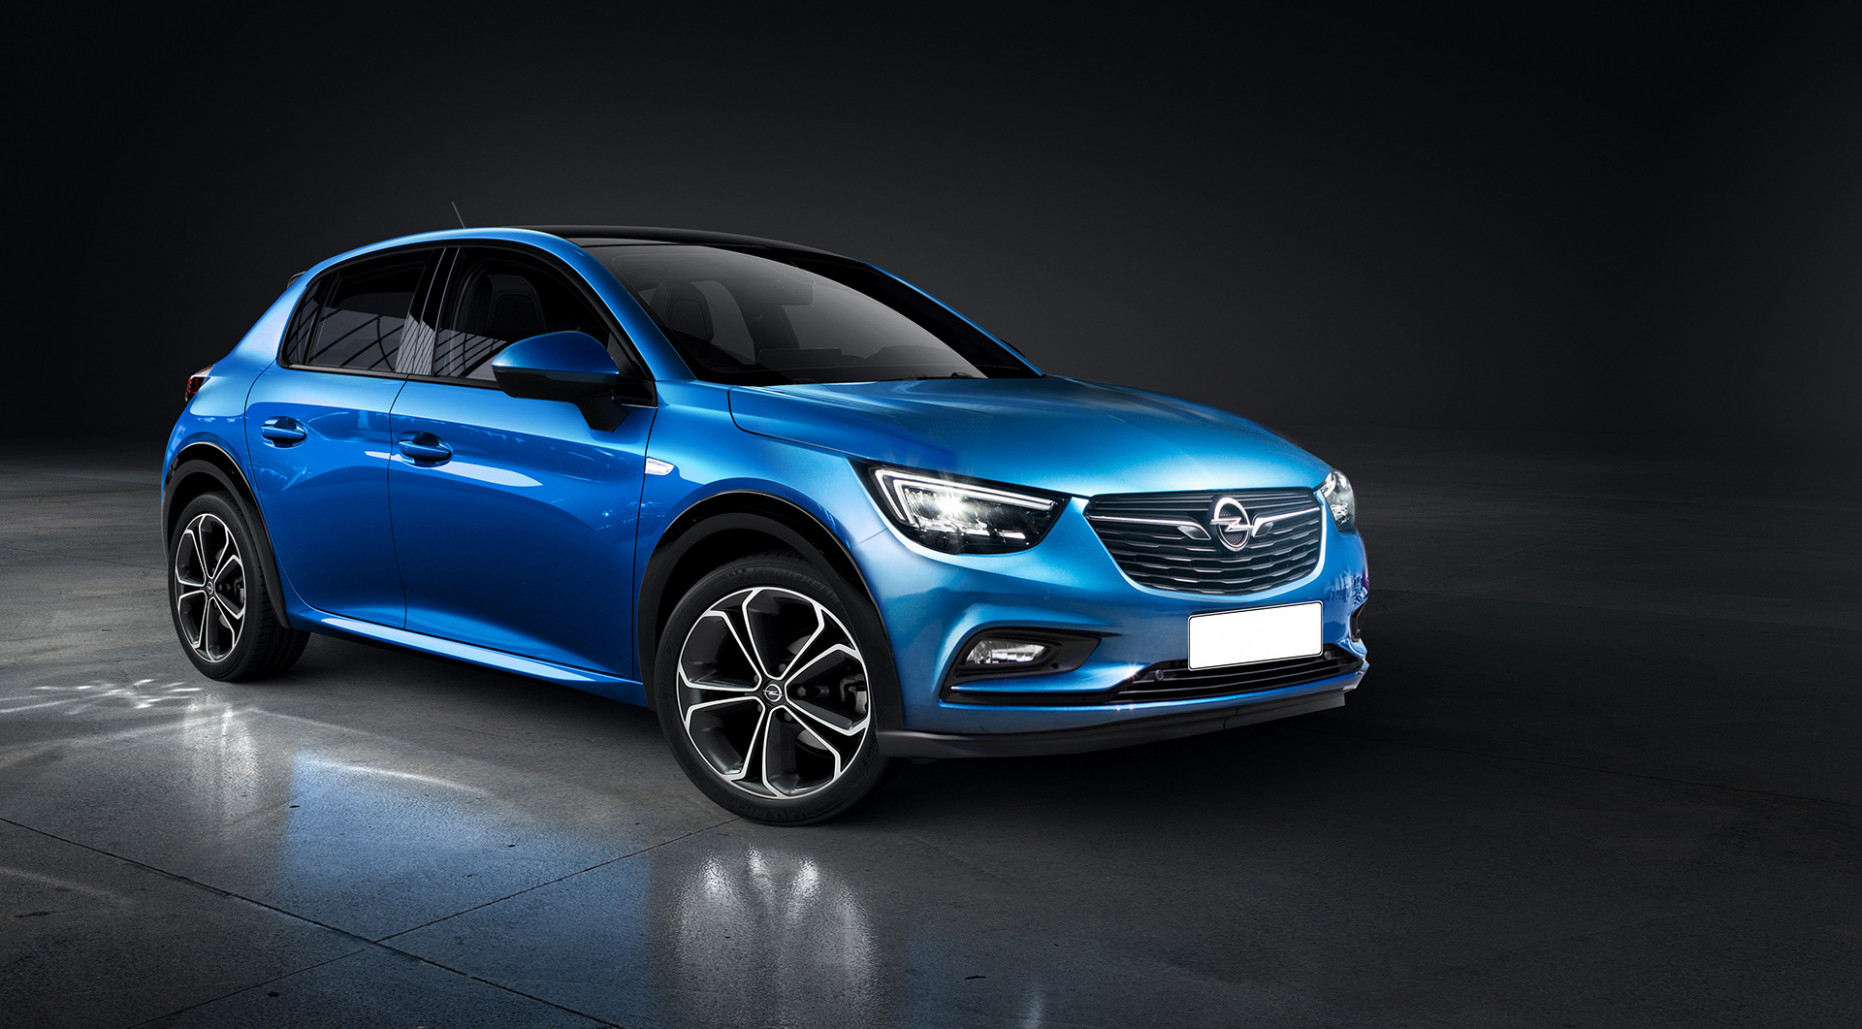 This 9 Opel Corsa Rendering Has Crossover Inspiration ..